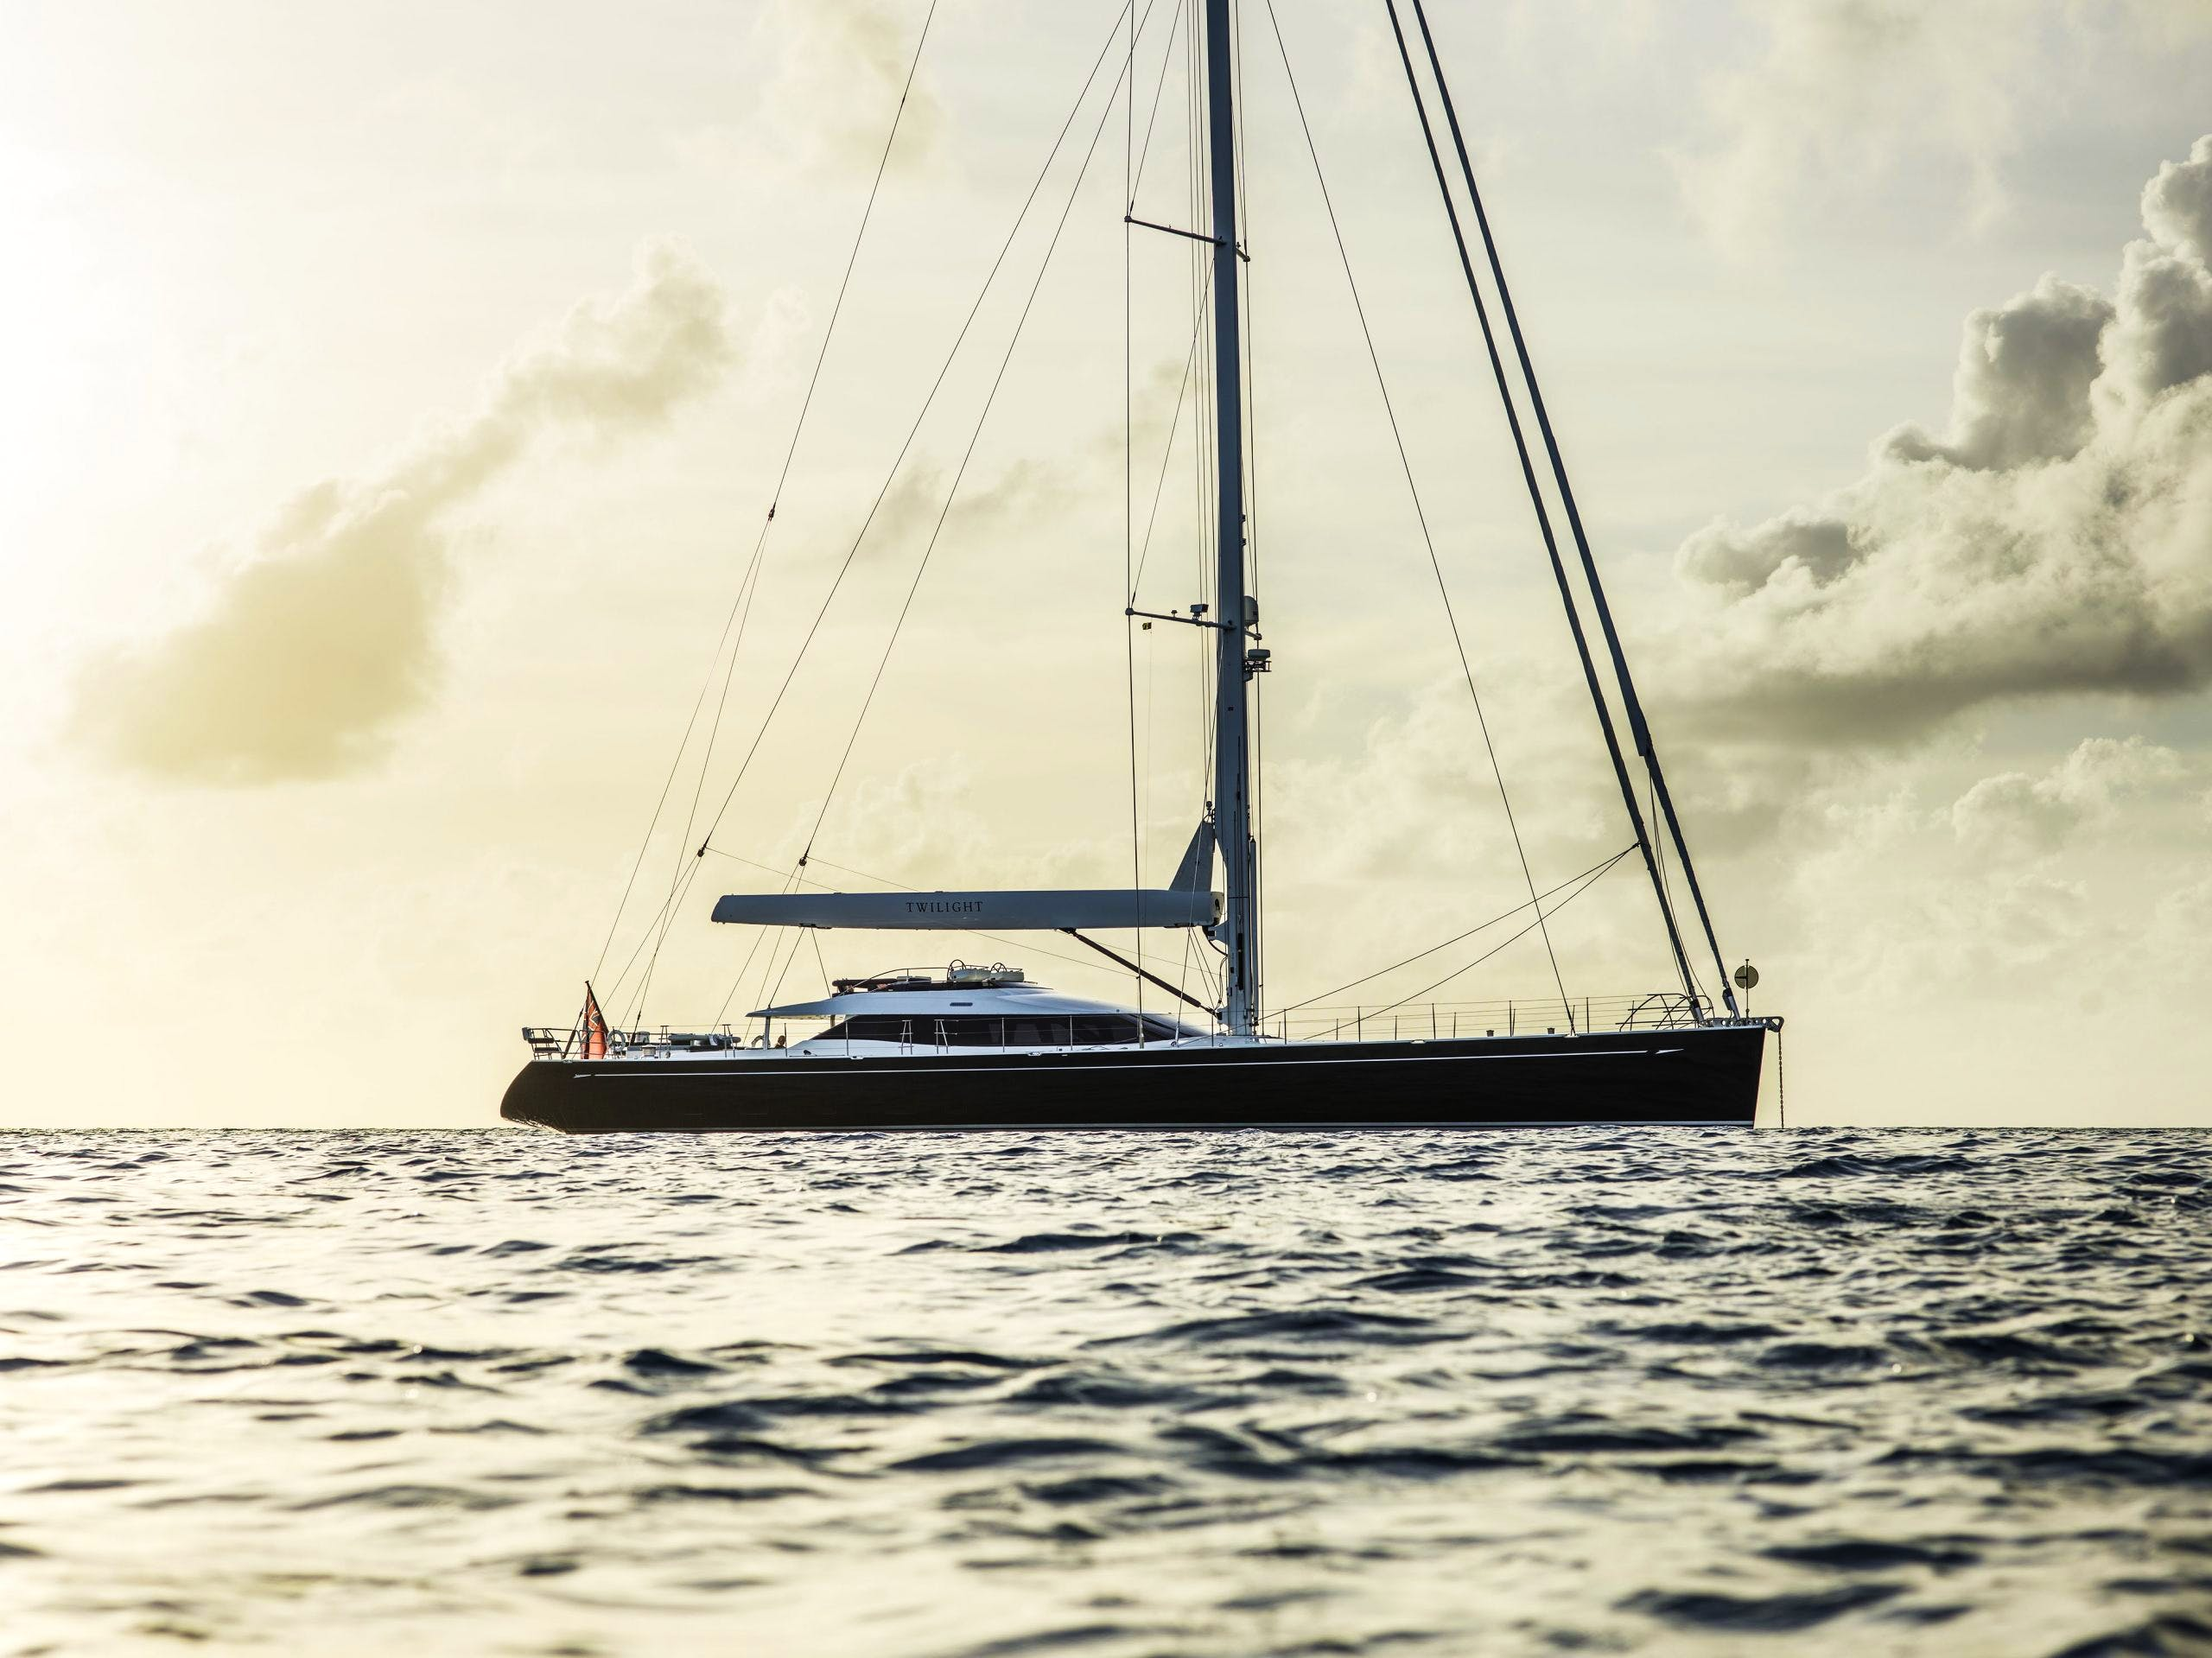 Seasonal Rates for TWILIGHT Private Luxury Yacht For Charter